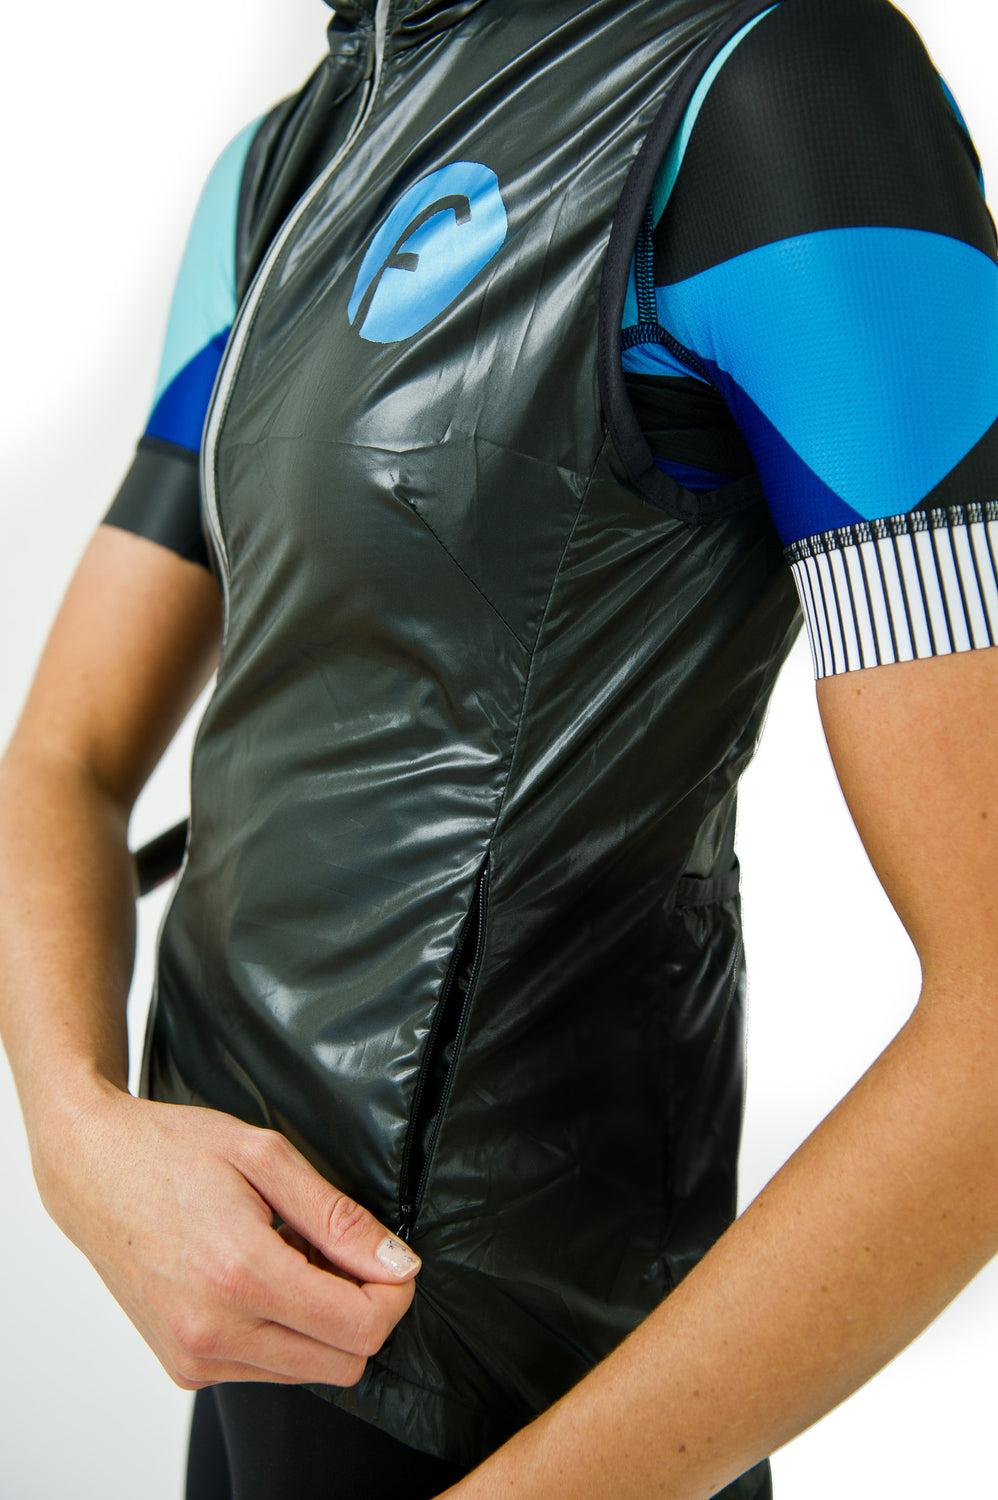 Women's cycling vest in black windproof and waterproof material with blue metallic fondo logo and reflective feature on the zip. Keeps cold biting winds away and packs away easily into a rear pocket. Hidden waterproof zipper pocket on the side protects your valuables.